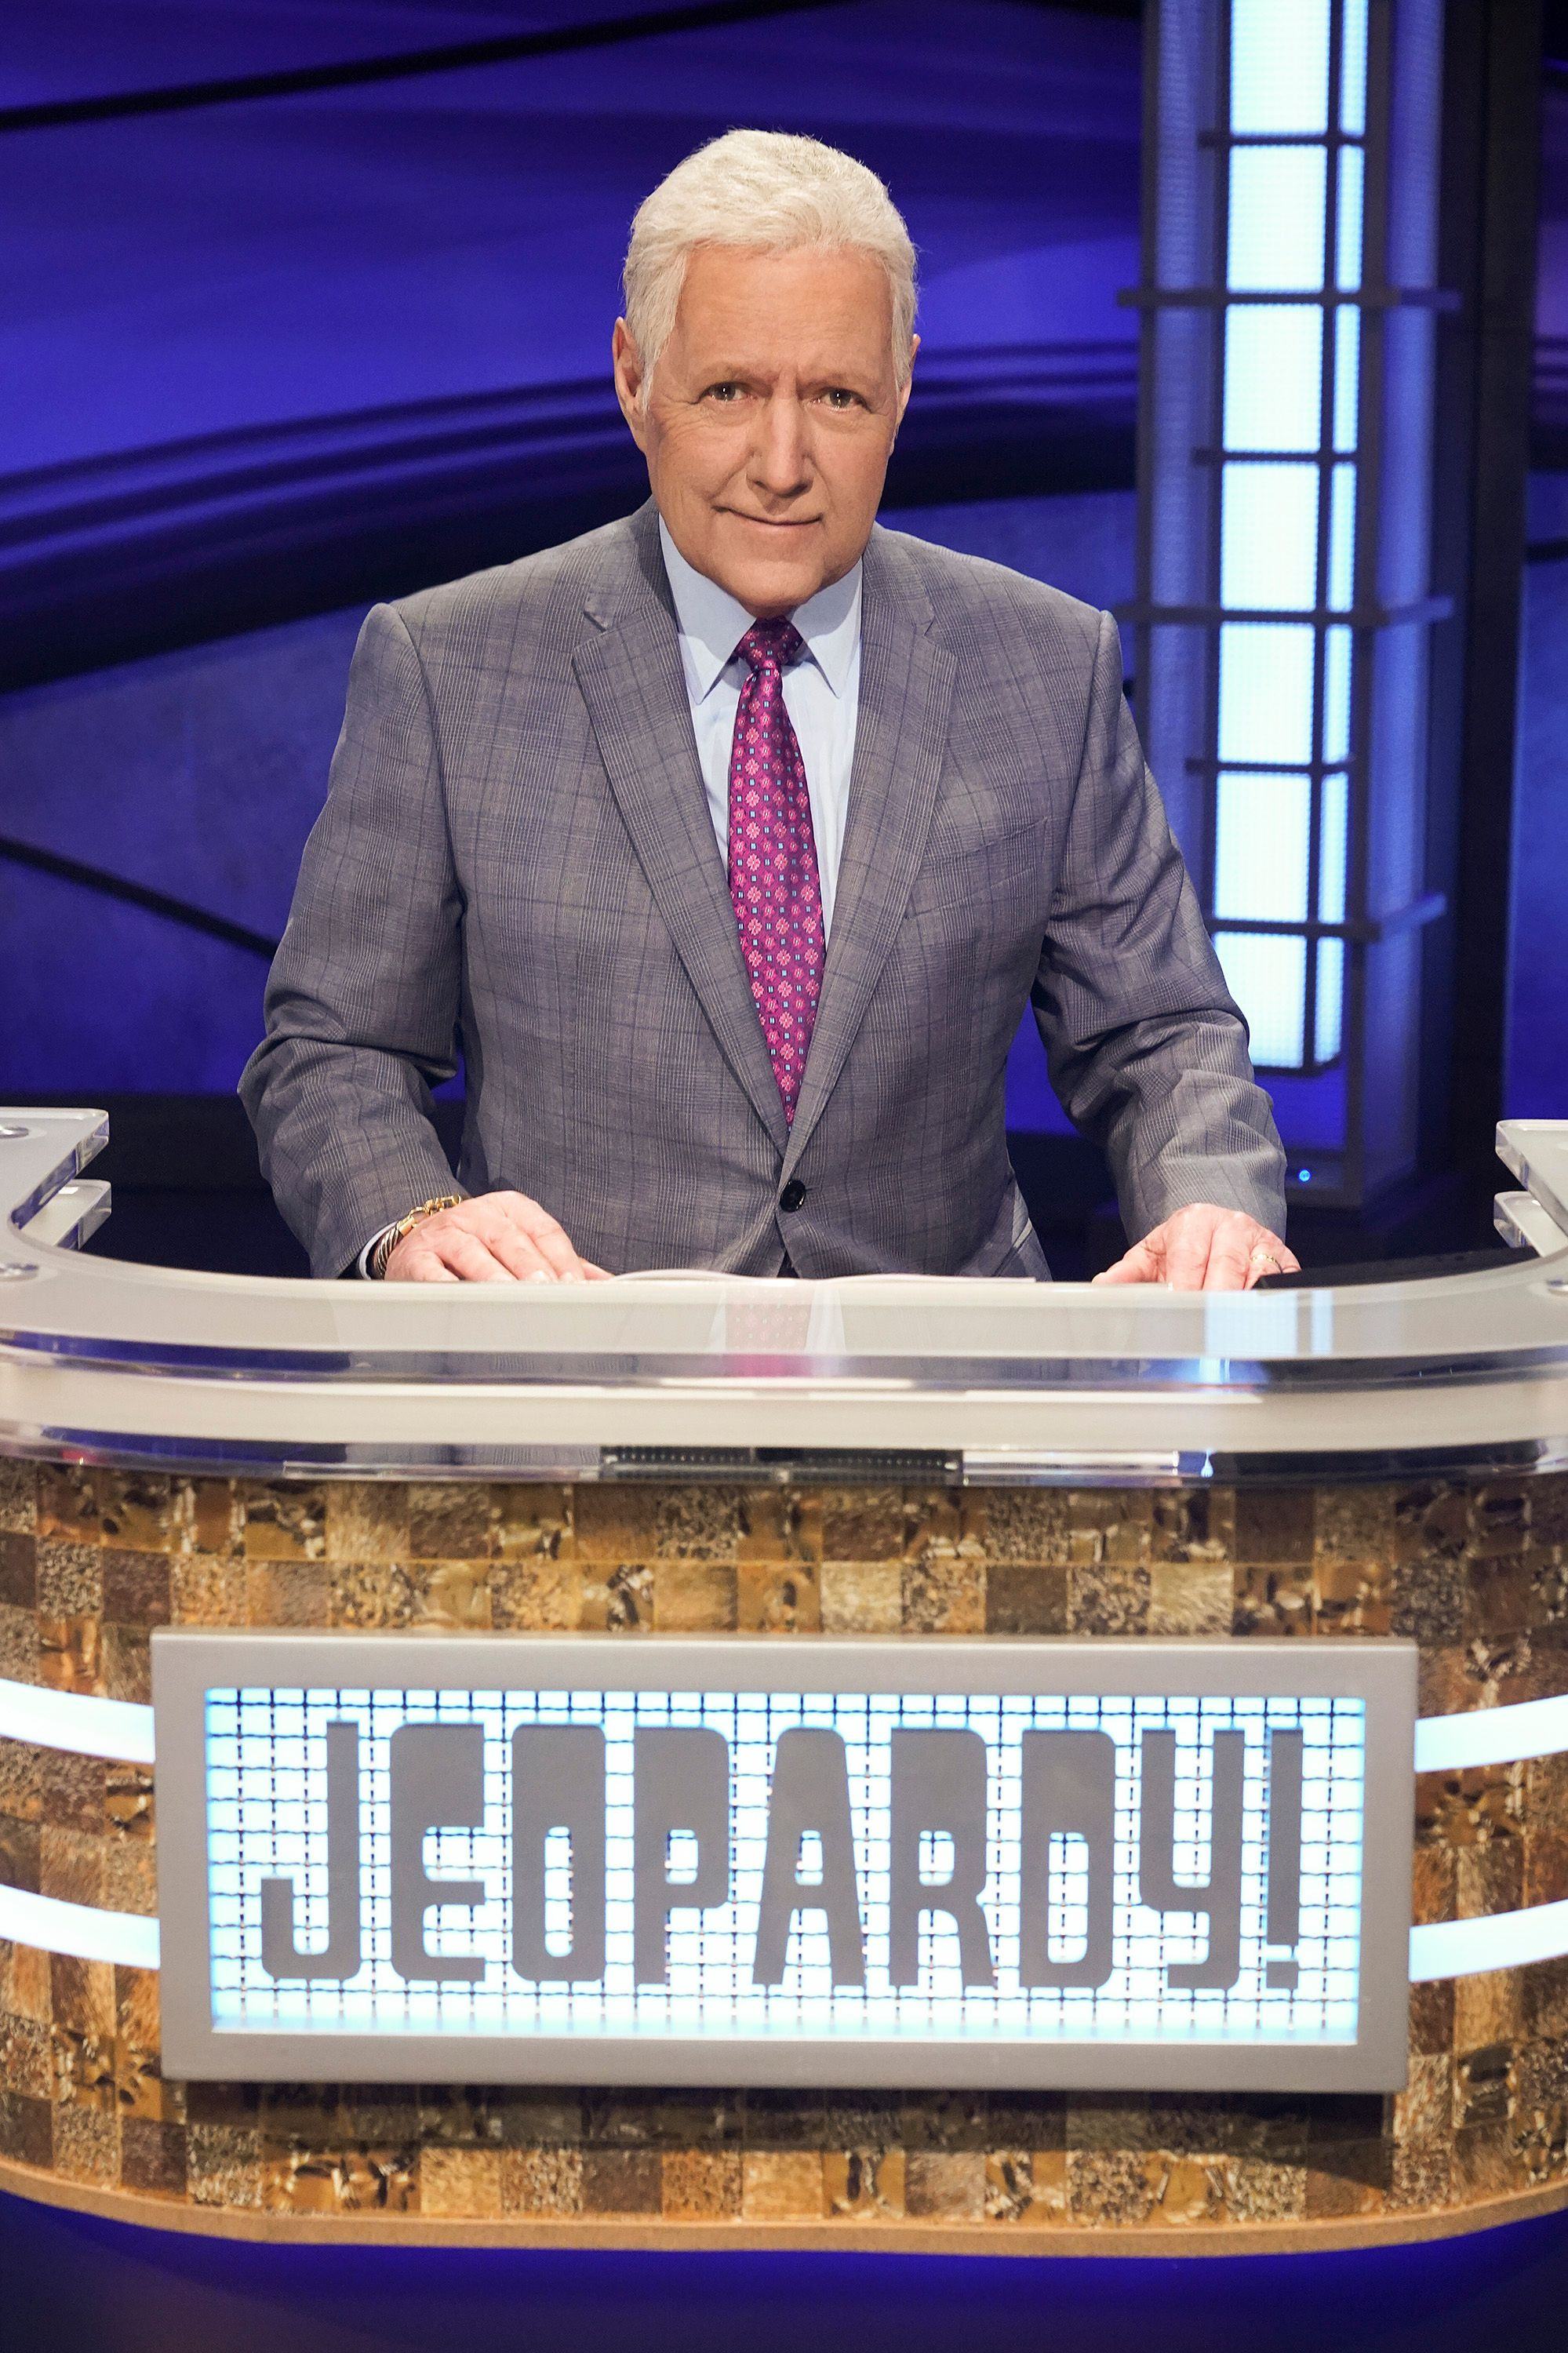 """Alex Trebek hosting """"Jeopardy! The Greatest of All Time"""" in January 2020 